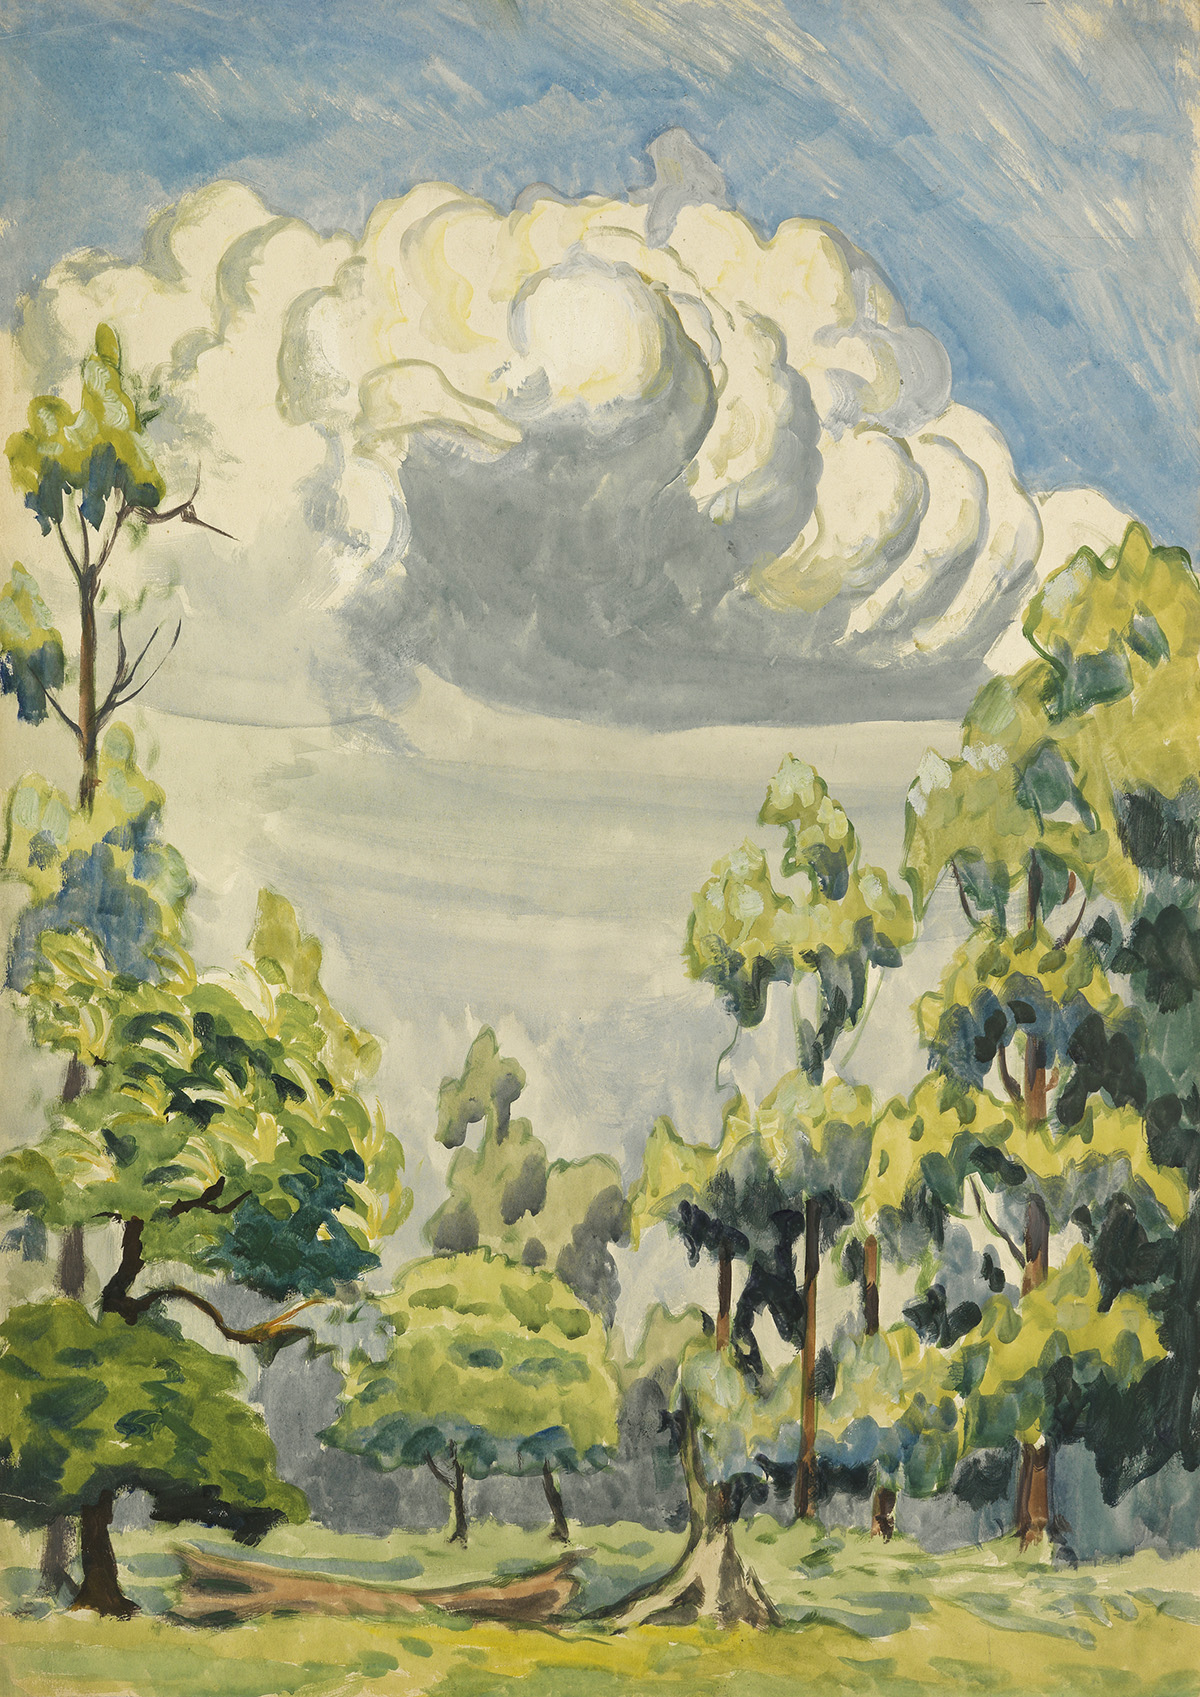 CHARLES-BURCHFIELD-Clouds-and-Trees-under-Blue-Skies